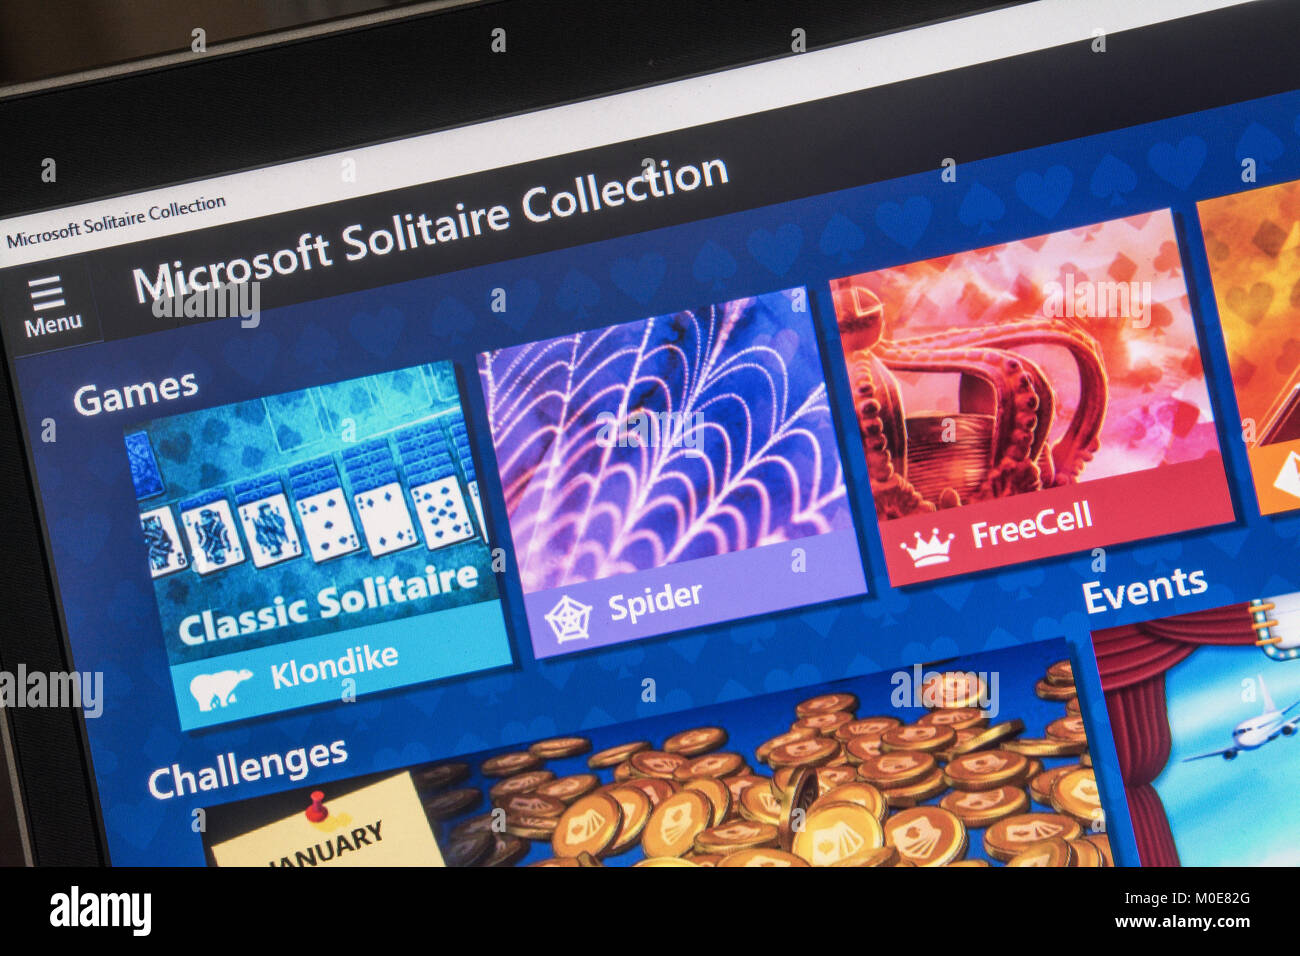 Computer screenshot of Microsoft solitaire game collection - Stock Image